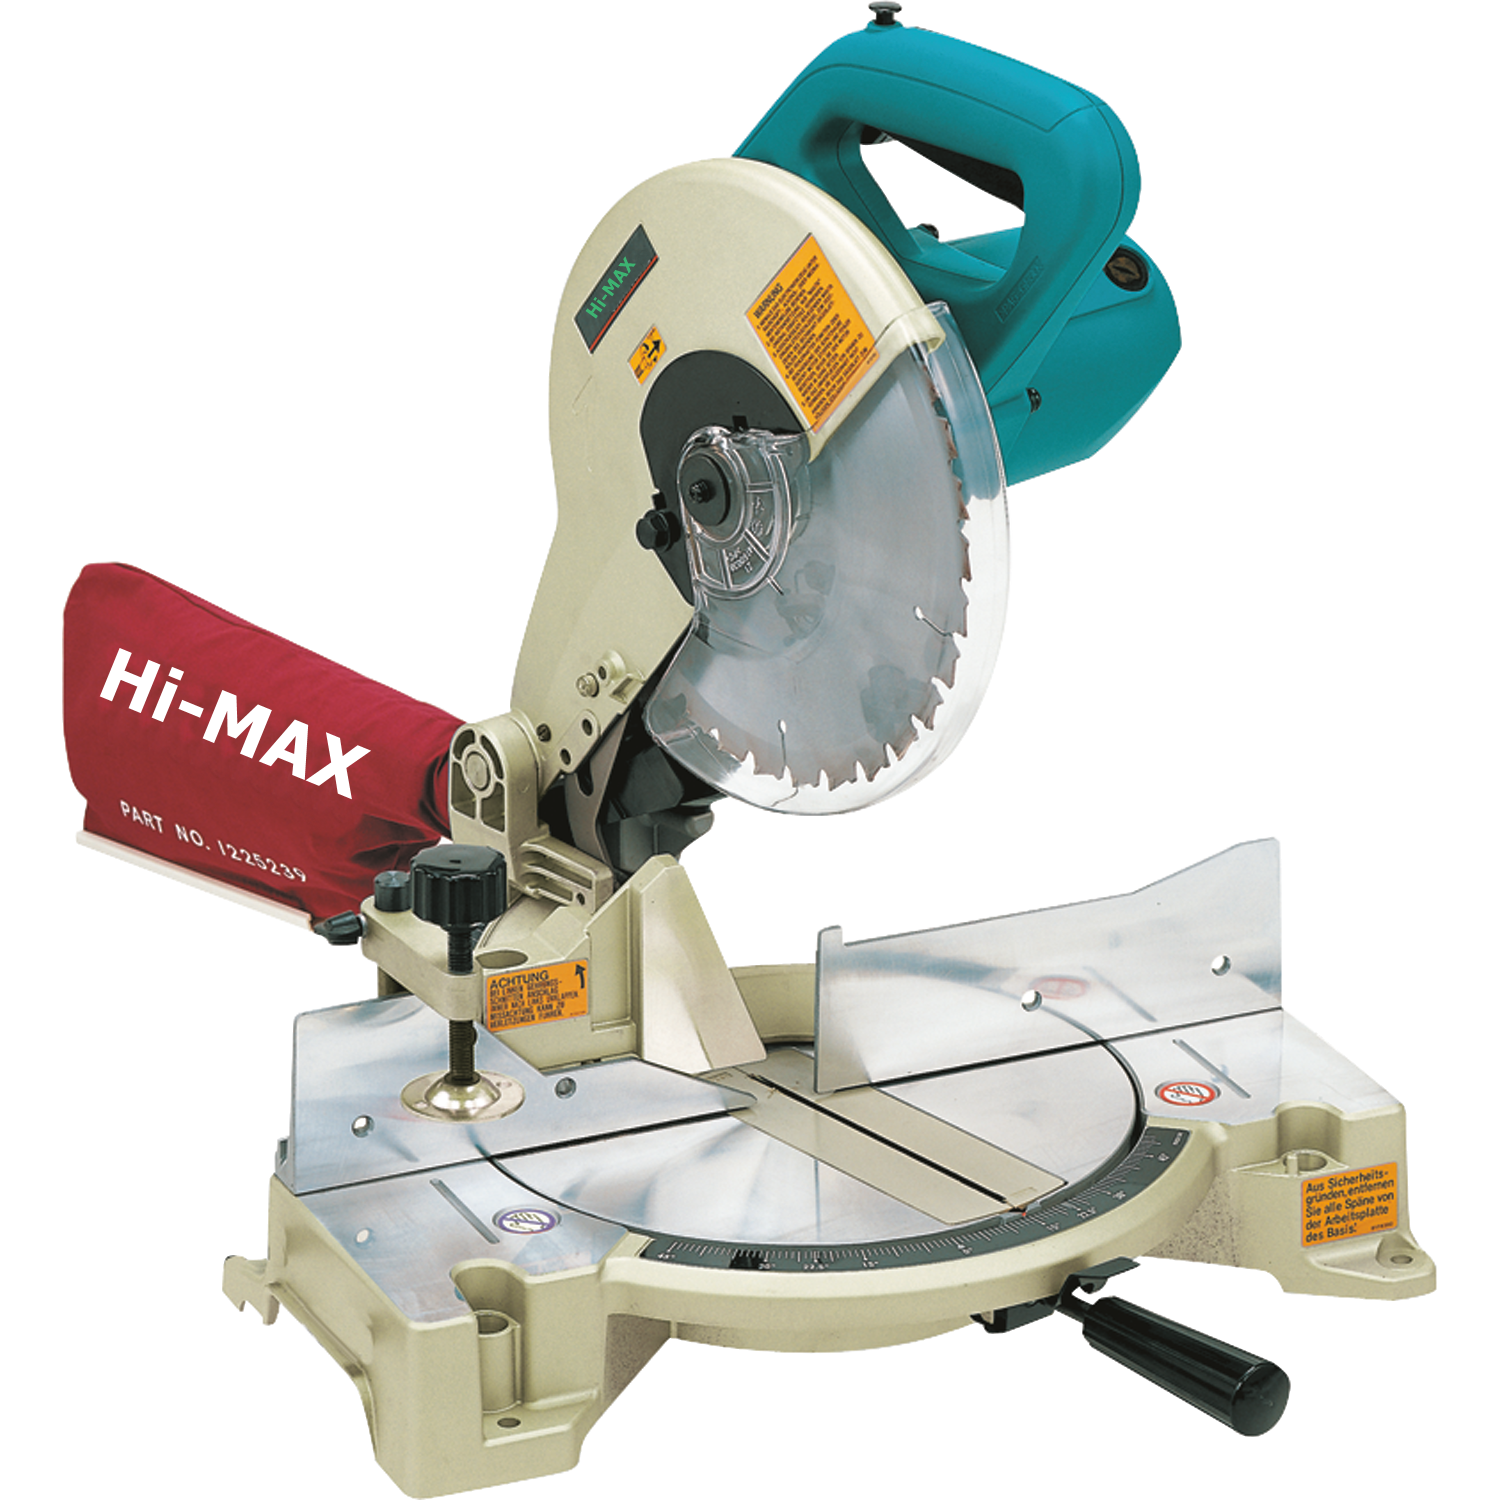 Miter saw png. Himax mitre mm